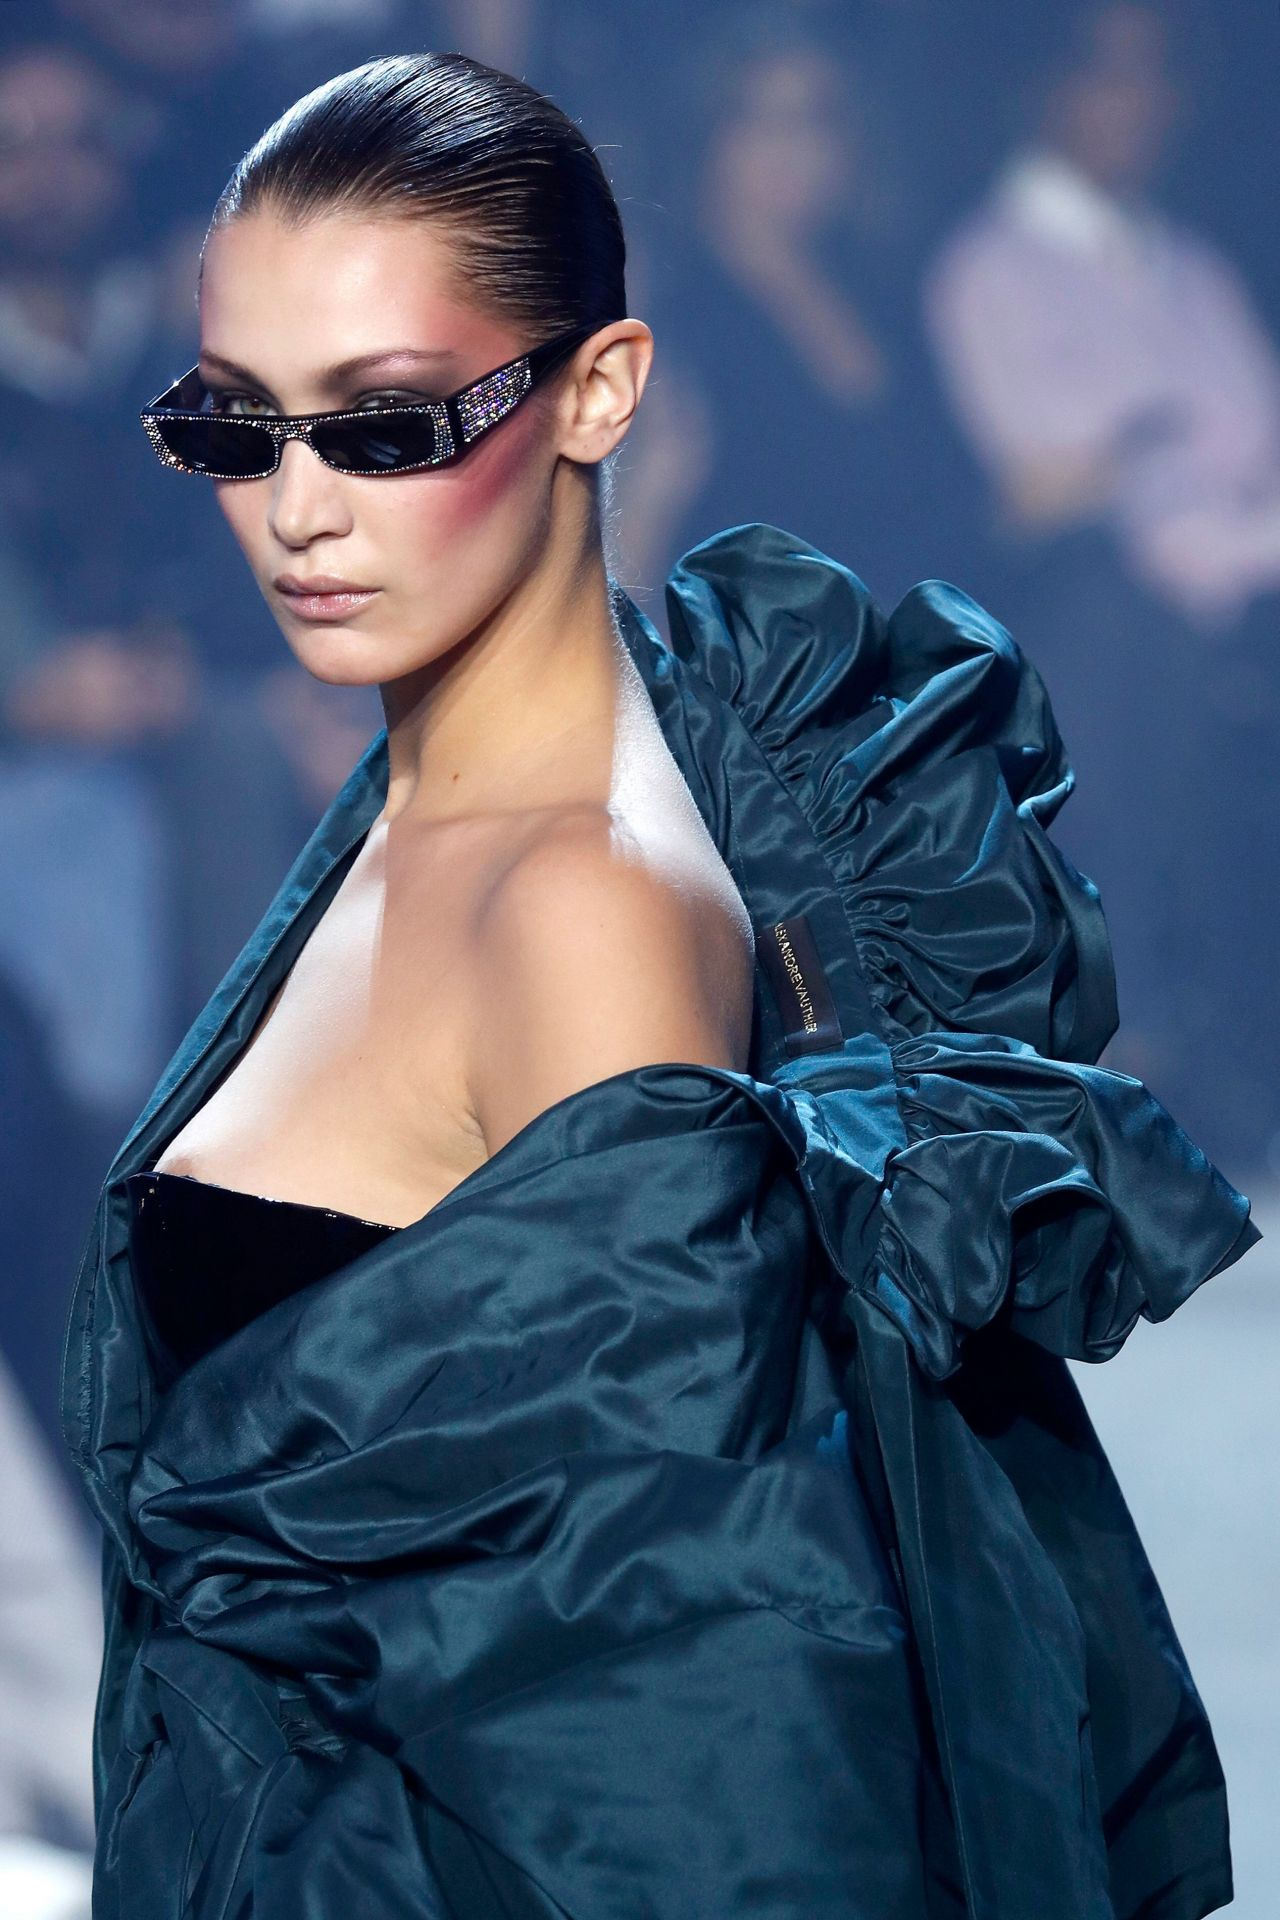 Bella Hadid Alexandre Vauthier Fashion Show In Paris 01 23 2018